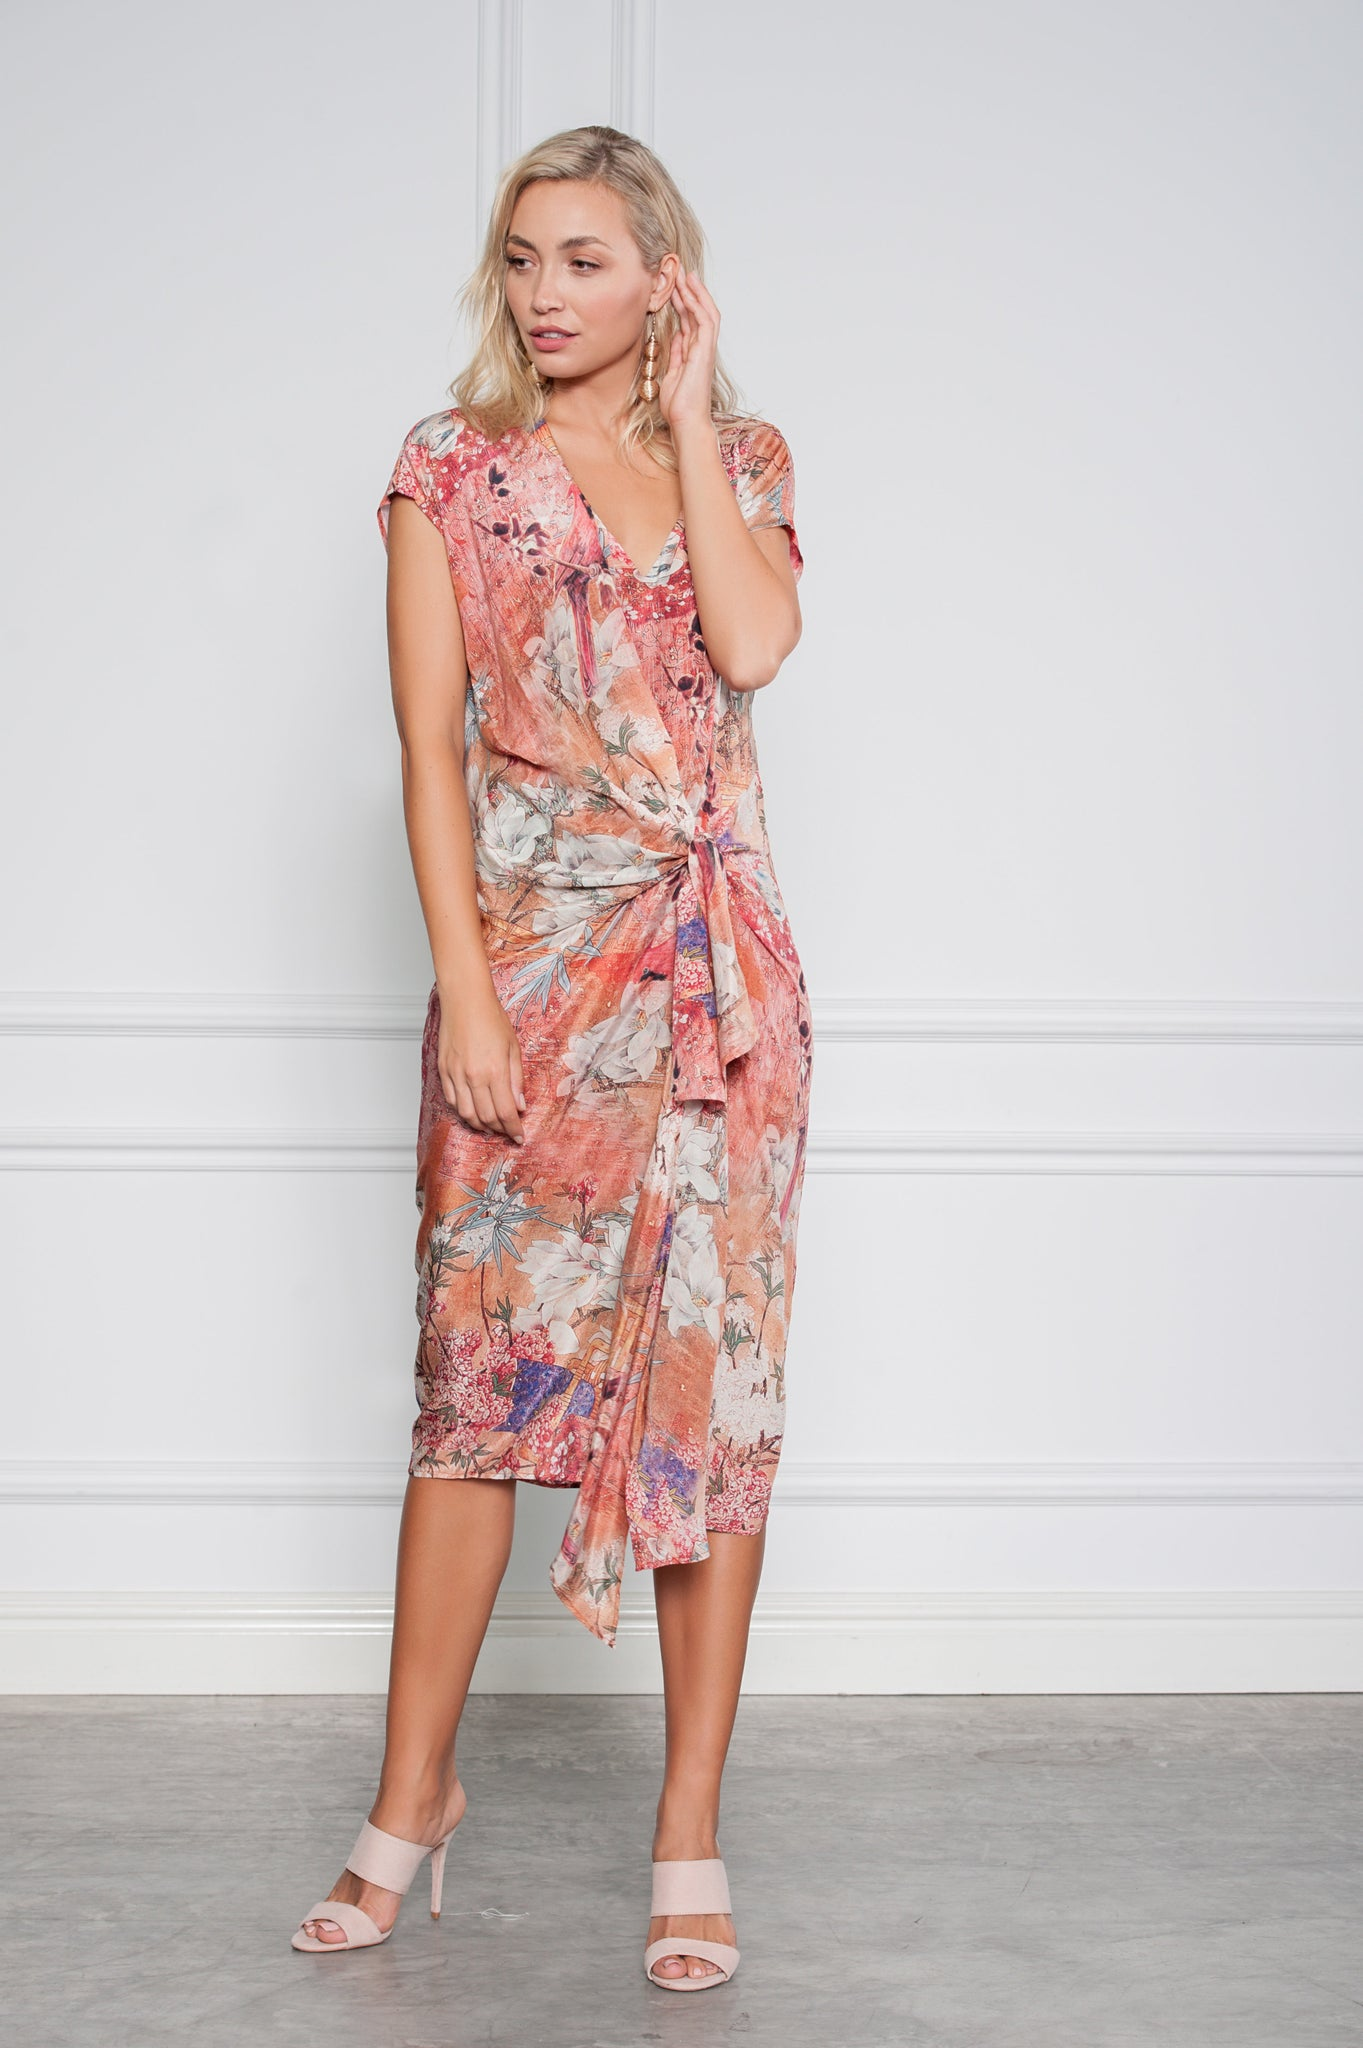 Buy Kamare Collective Dolly Dress now at Smoke and Mirrors Boutique. Buy Kamare Dolly Dress with ZipPay. Buy Kamare Dolly Dress with AfterPay. Buy Kamare with Free Shipping.